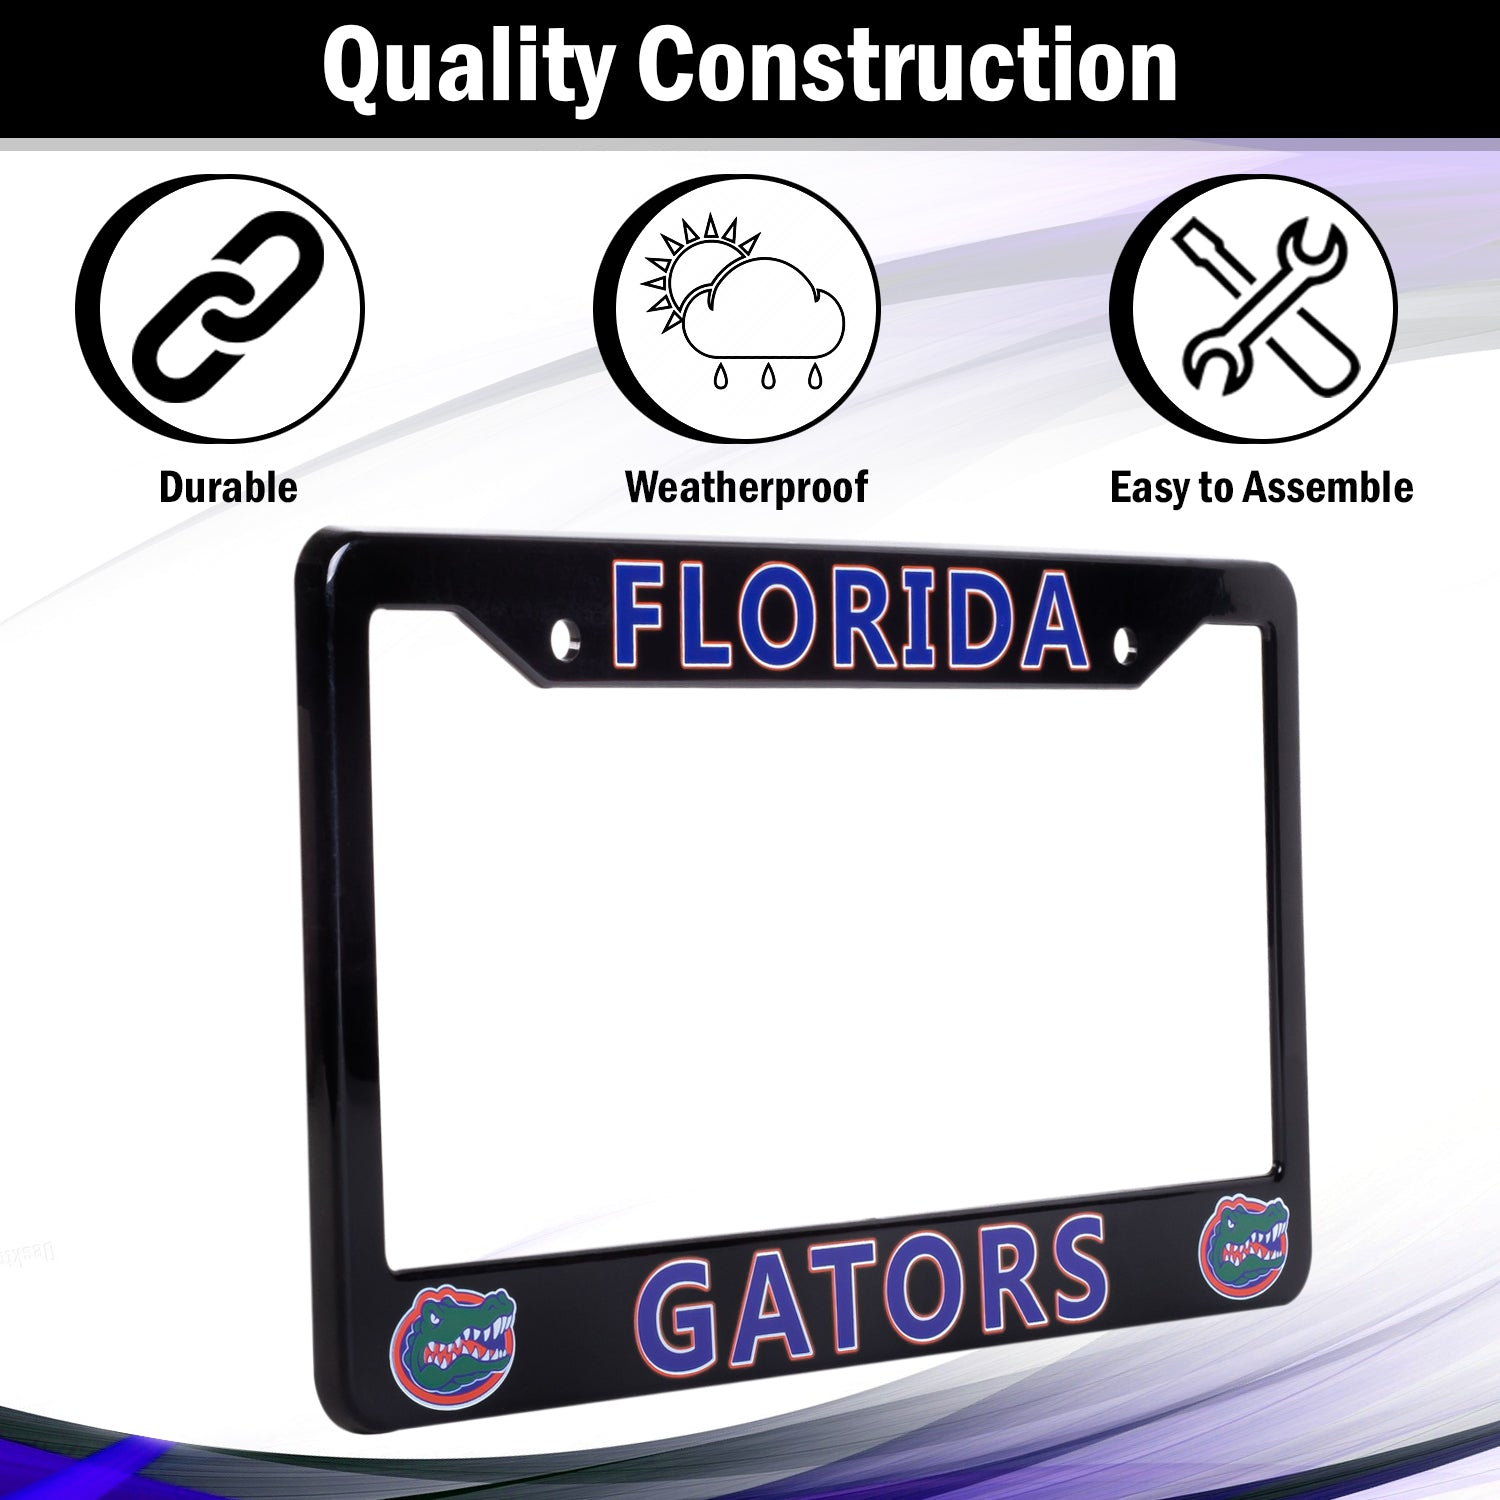 Florida Gators License Plate Frame Cover | ads